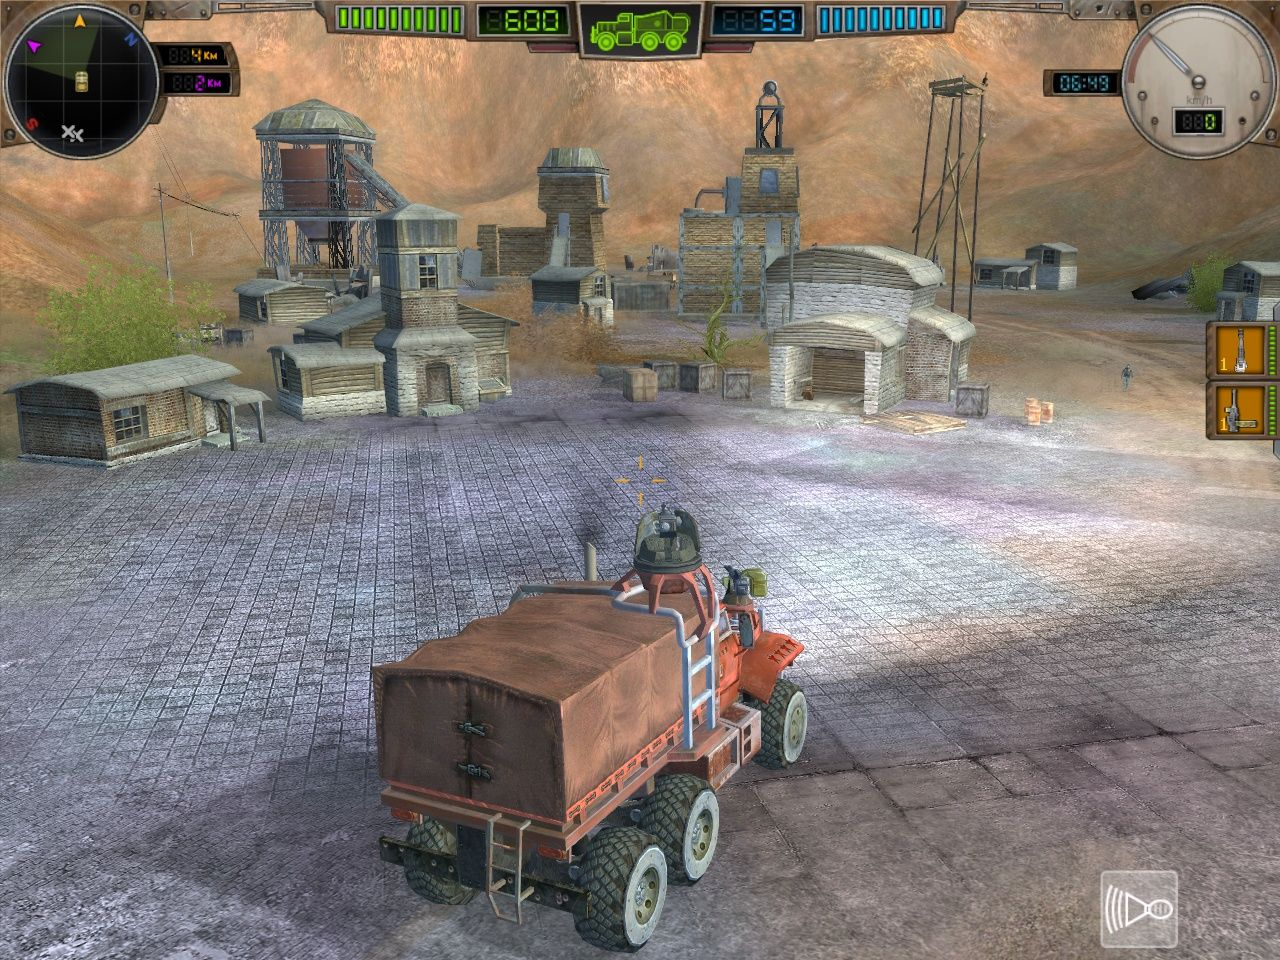 Hard Truck: Apocalypse - Rise of Clans Windows Arrival in a small town